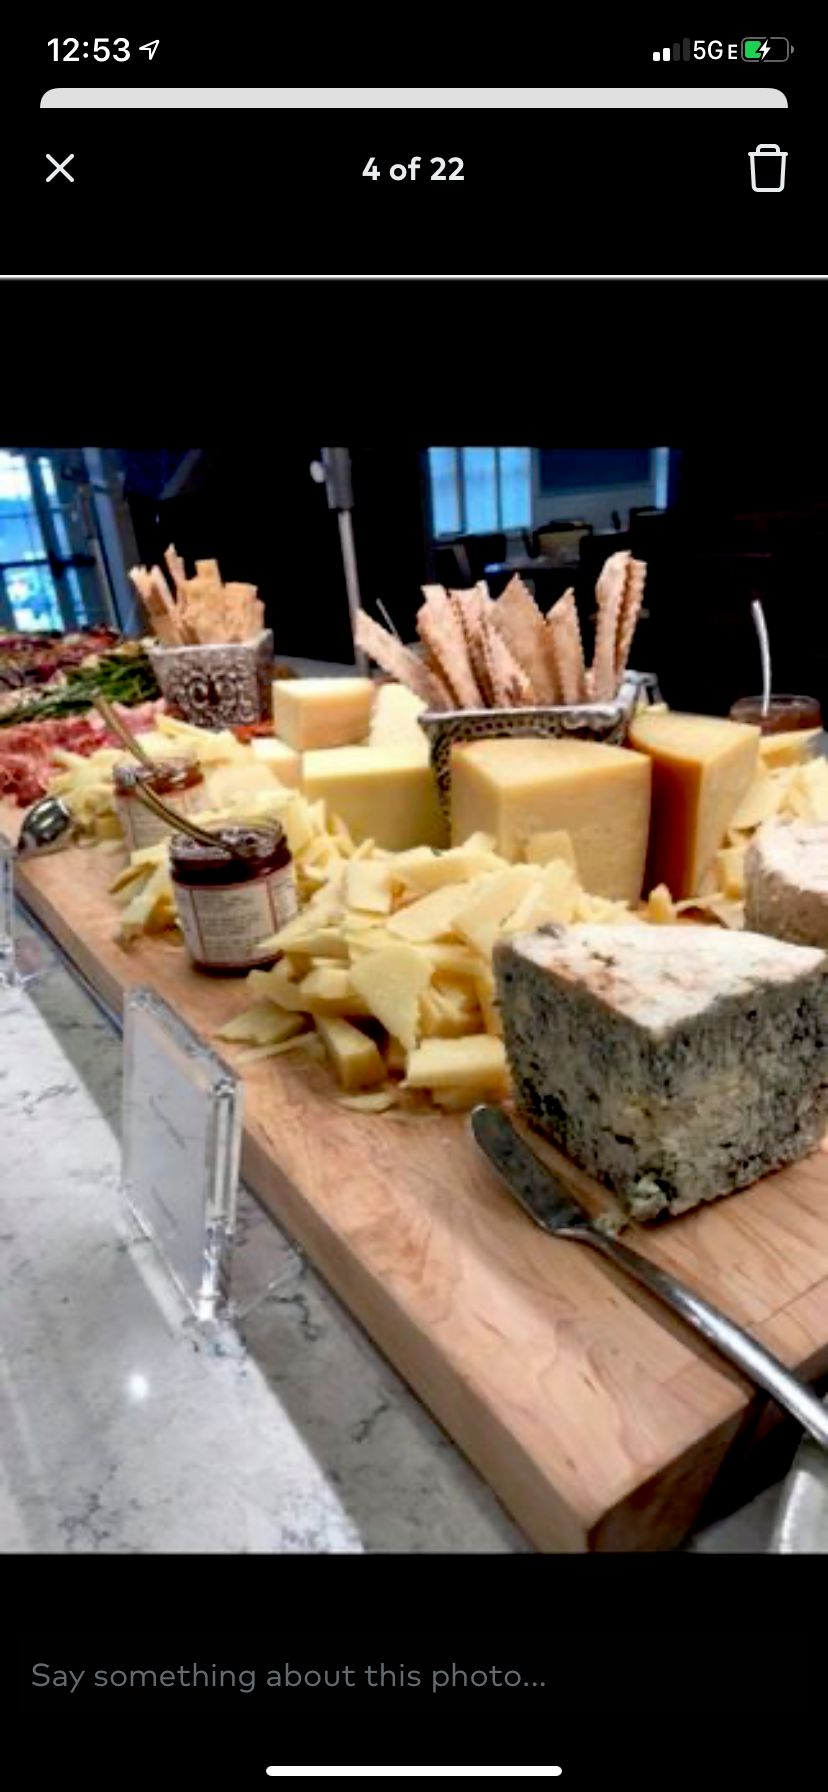 Cheese and Imported Deli Meats Display